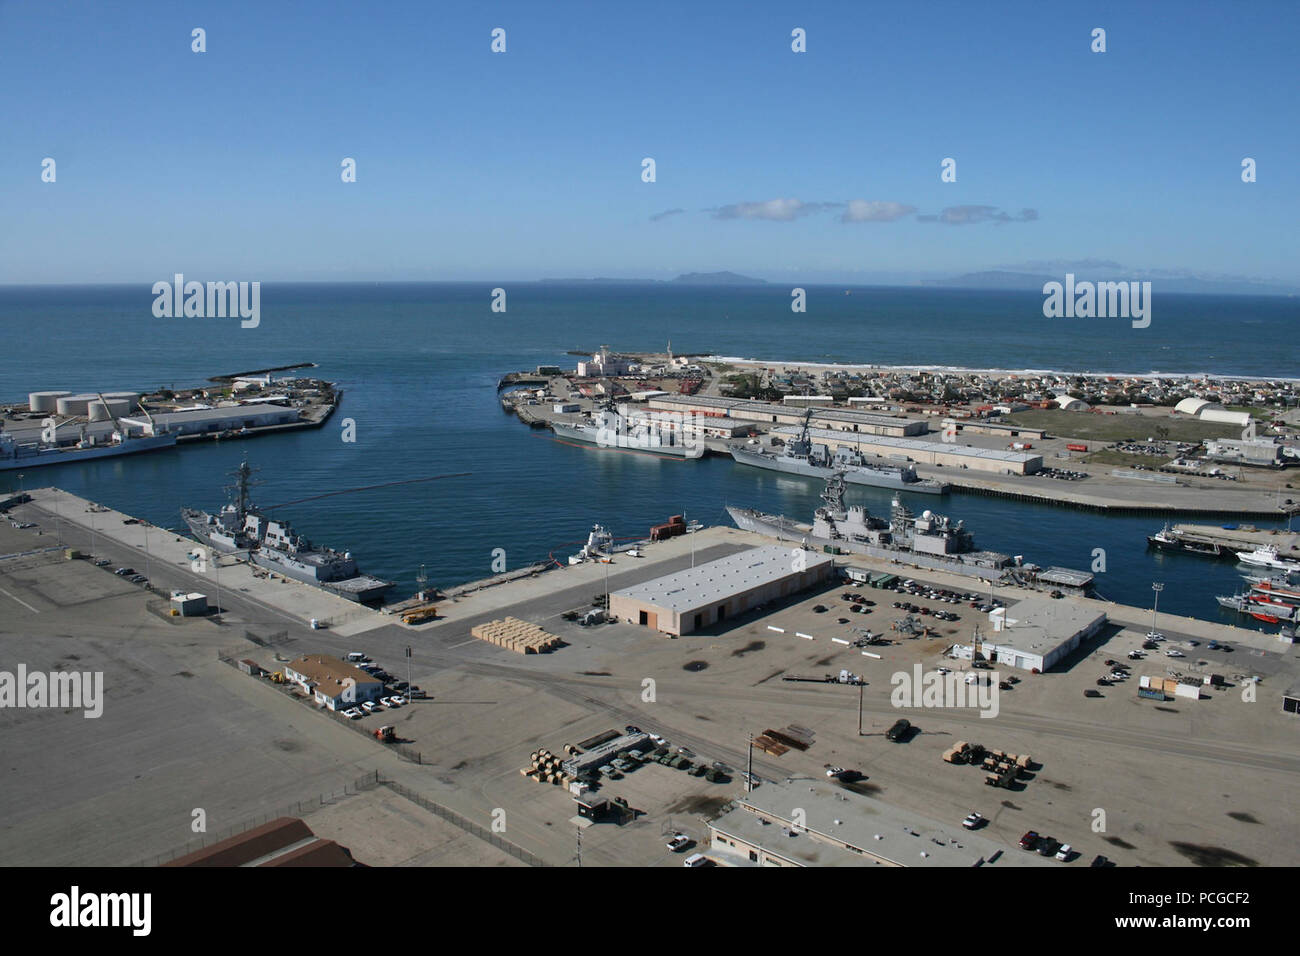 PORT HUENEME, Calif. (Nov. 13, 2012) An aerial view of the Southwest portion of the Naval Base Ventura County deep water port.  This port is the only deep water port between Los Angeles and San Francisco and serves a vital role in the region. Stock Photo